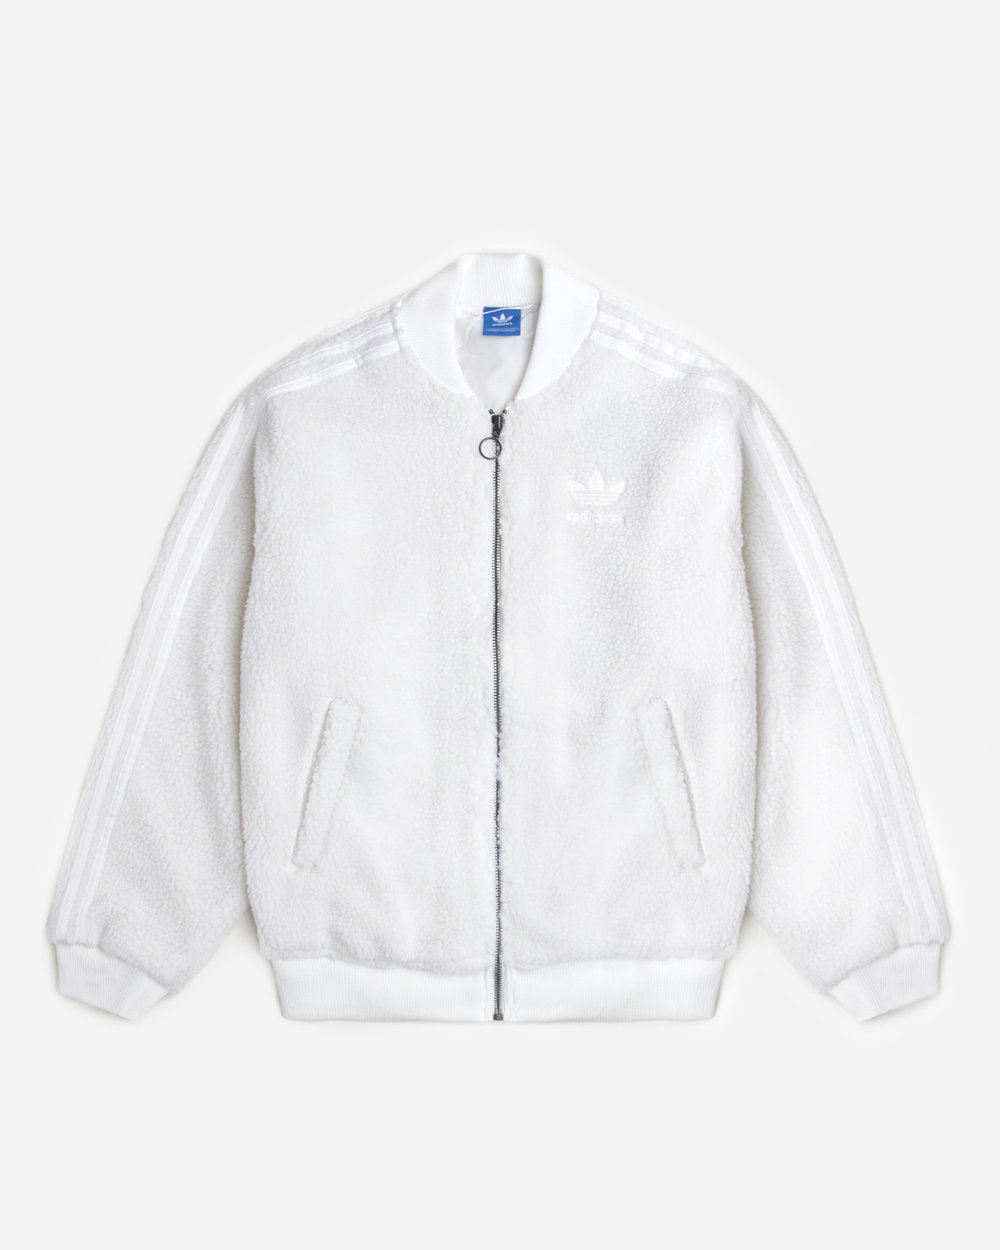 307490fe3 adidas Originals Goes Shearling With SST Track Jacket — CNK Daily ...